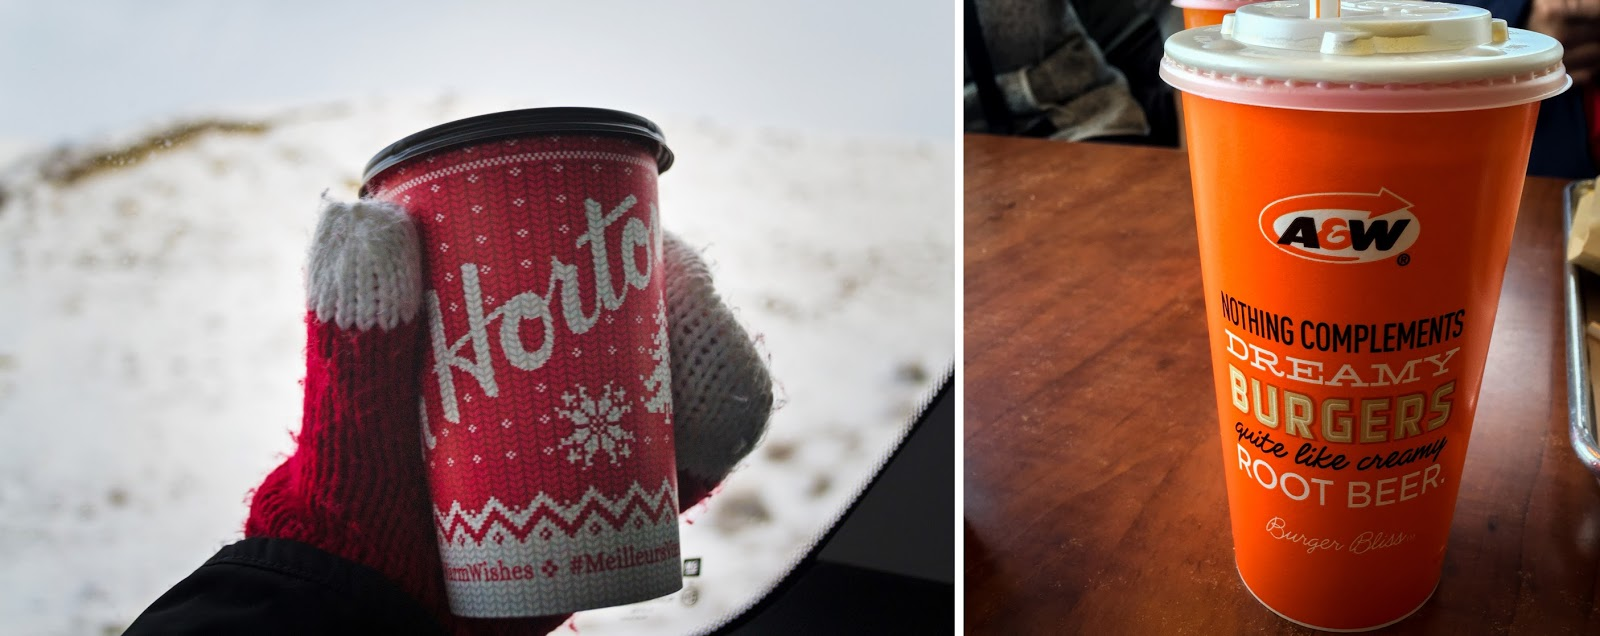 Tim Horton's and Root Beer in Canada